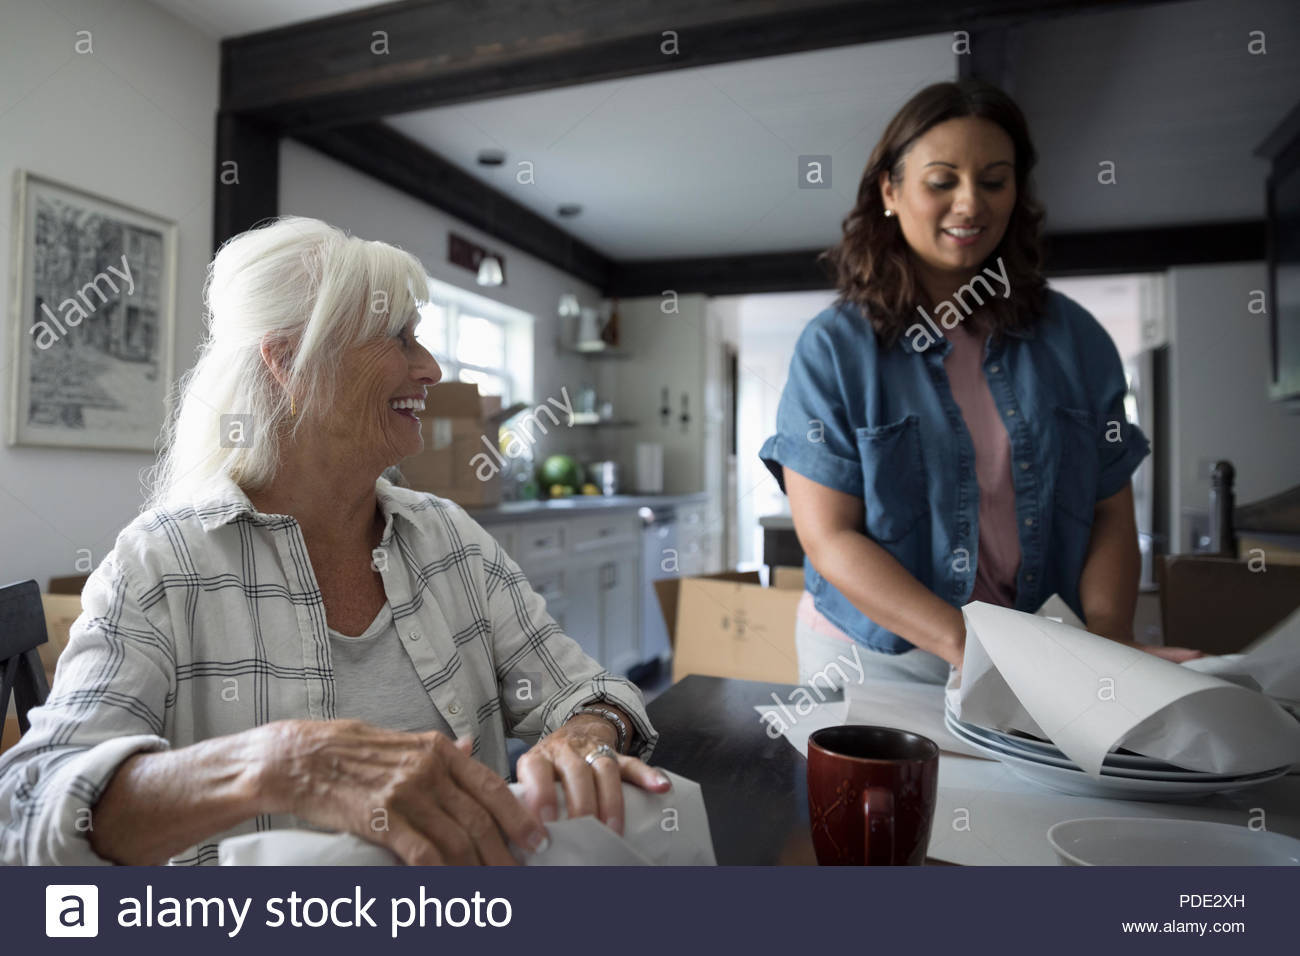 Smiling daughter helping senior mother downsize, packing dishes Stock Photo